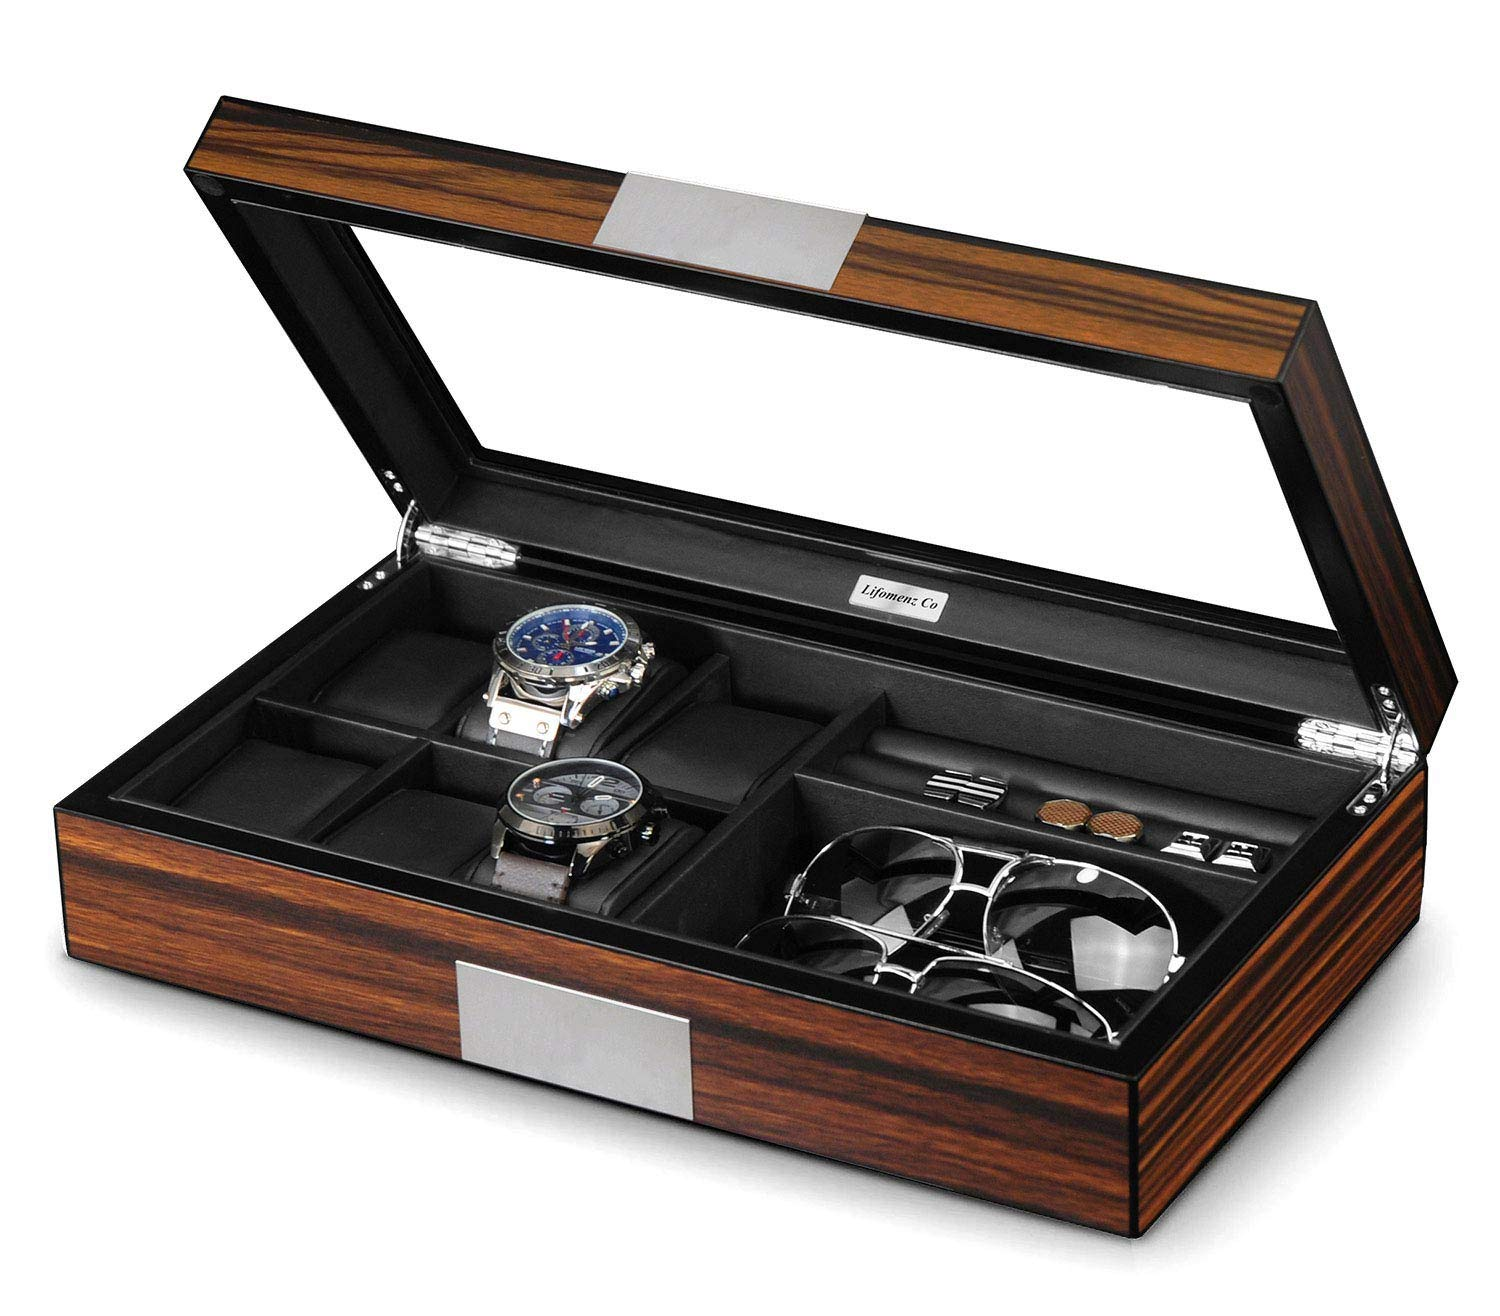 Lifomenz Co Watch Jewelry Box for Men 6 Slot Watch Box,6 Watch Case 8 Pair Cufflinks and Sunglasses Display Box,Wood Large Watch Display Case Organizer with Real Glass Window Top by Lifomenz Co